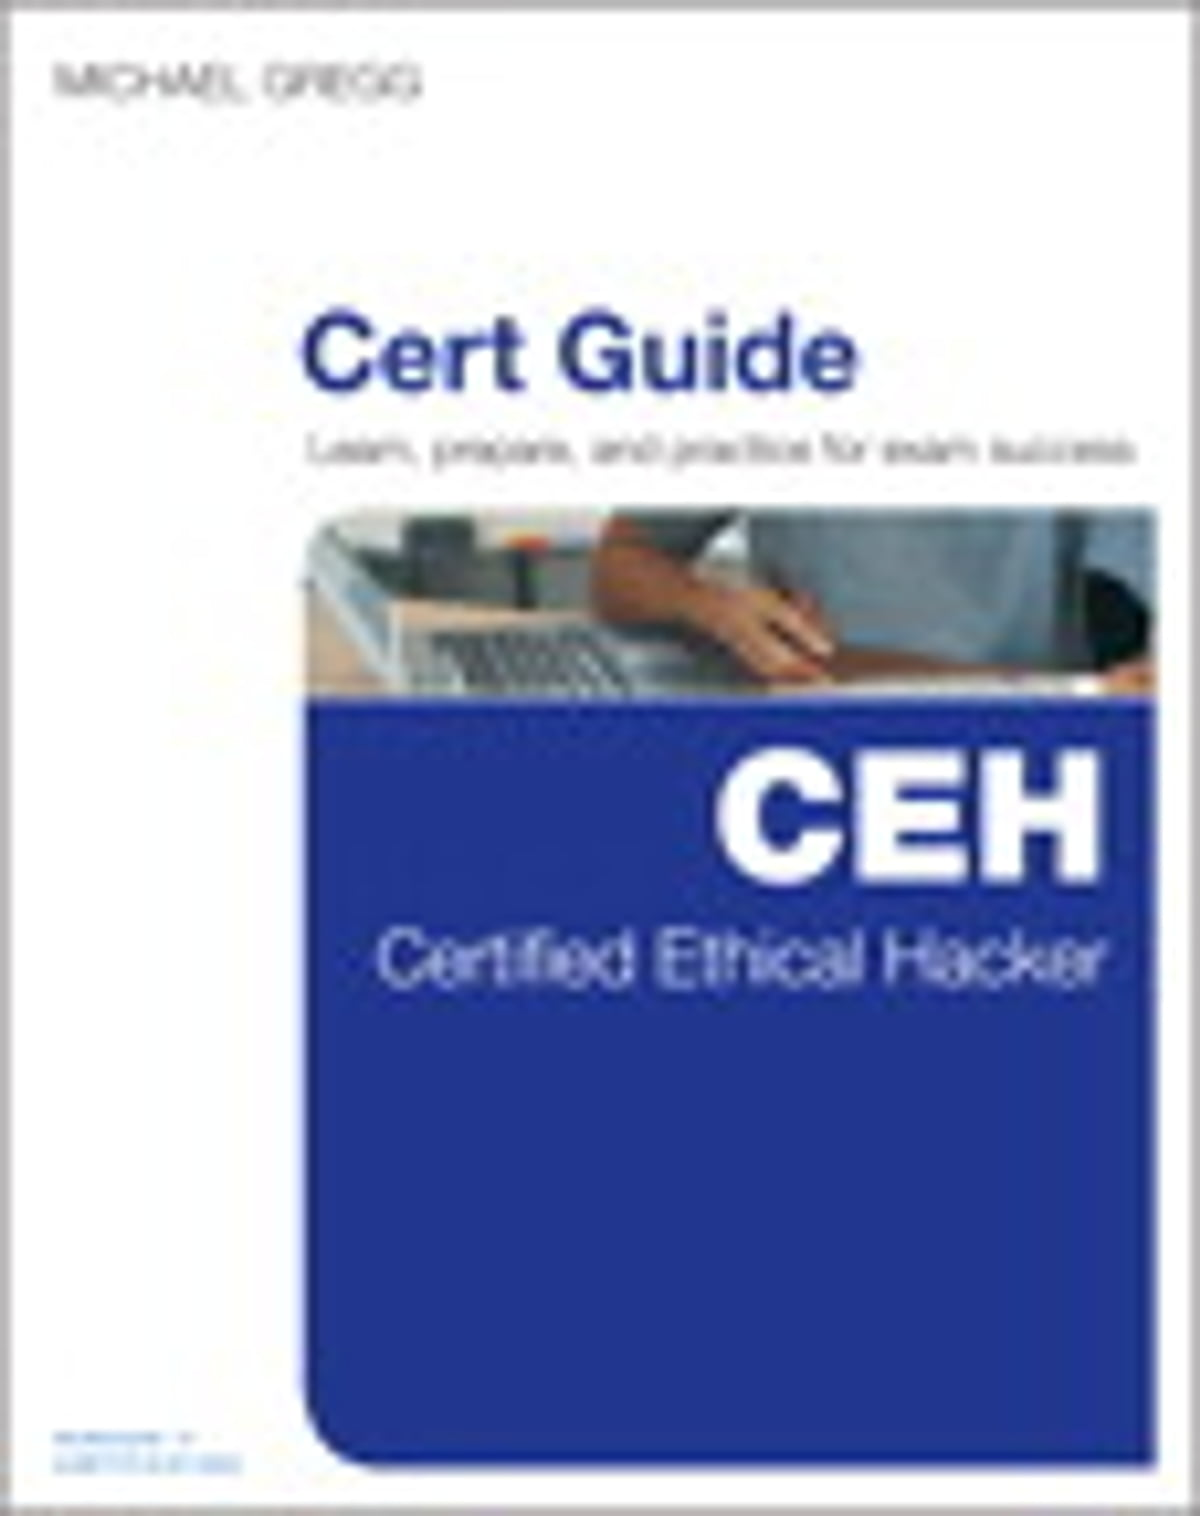 Certified ethical hacker ceh cert guide ebook by michael gregg certified ethical hacker ceh cert guide ebook by michael gregg 9780133413021 rakuten kobo 1betcityfo Images